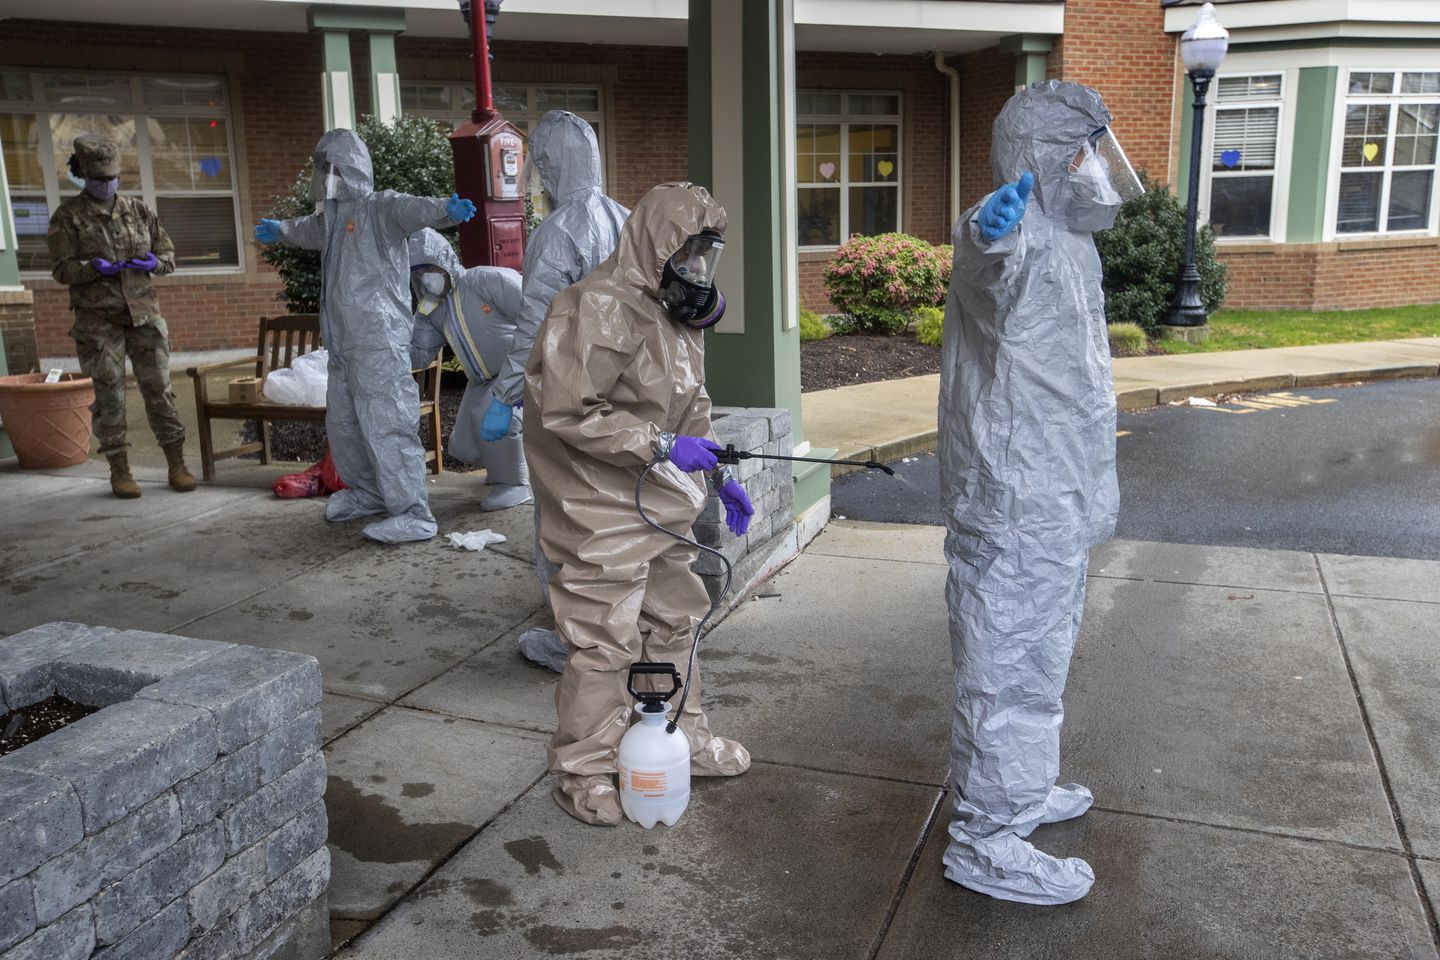 Members of the Massachusetts National Guard remove their hazmat suits after leaving Alliance Health at Marina Bay. The National Guard was deployed to Quincy to assist nursing homes with COVID-19 testing.